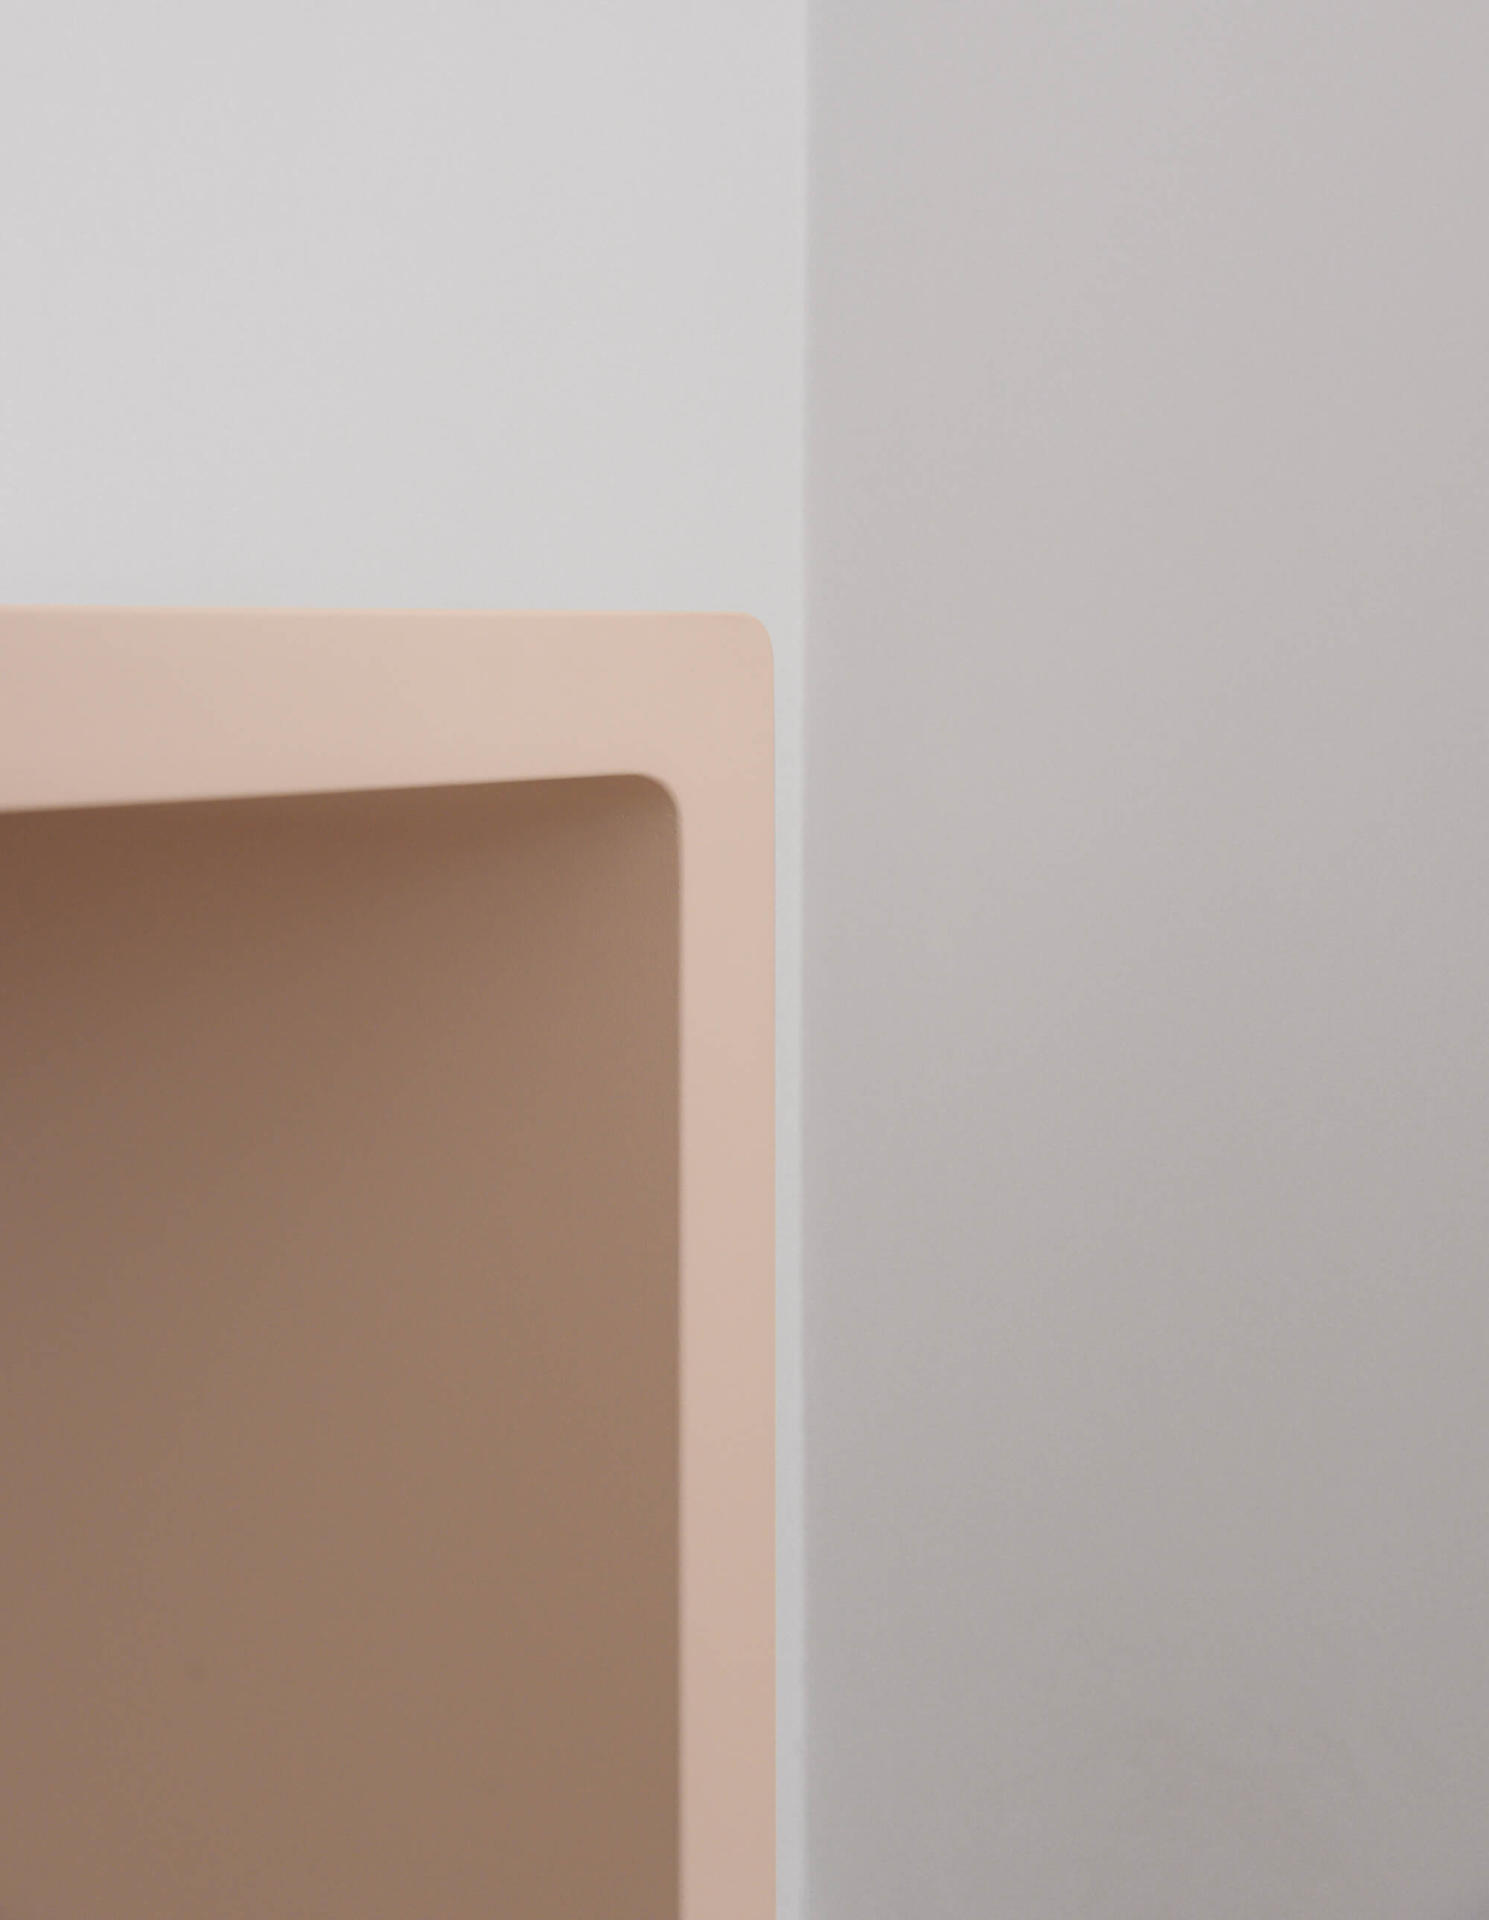 Collier Webb X Samantha Todhunter Design Pink Lacquer Console Table